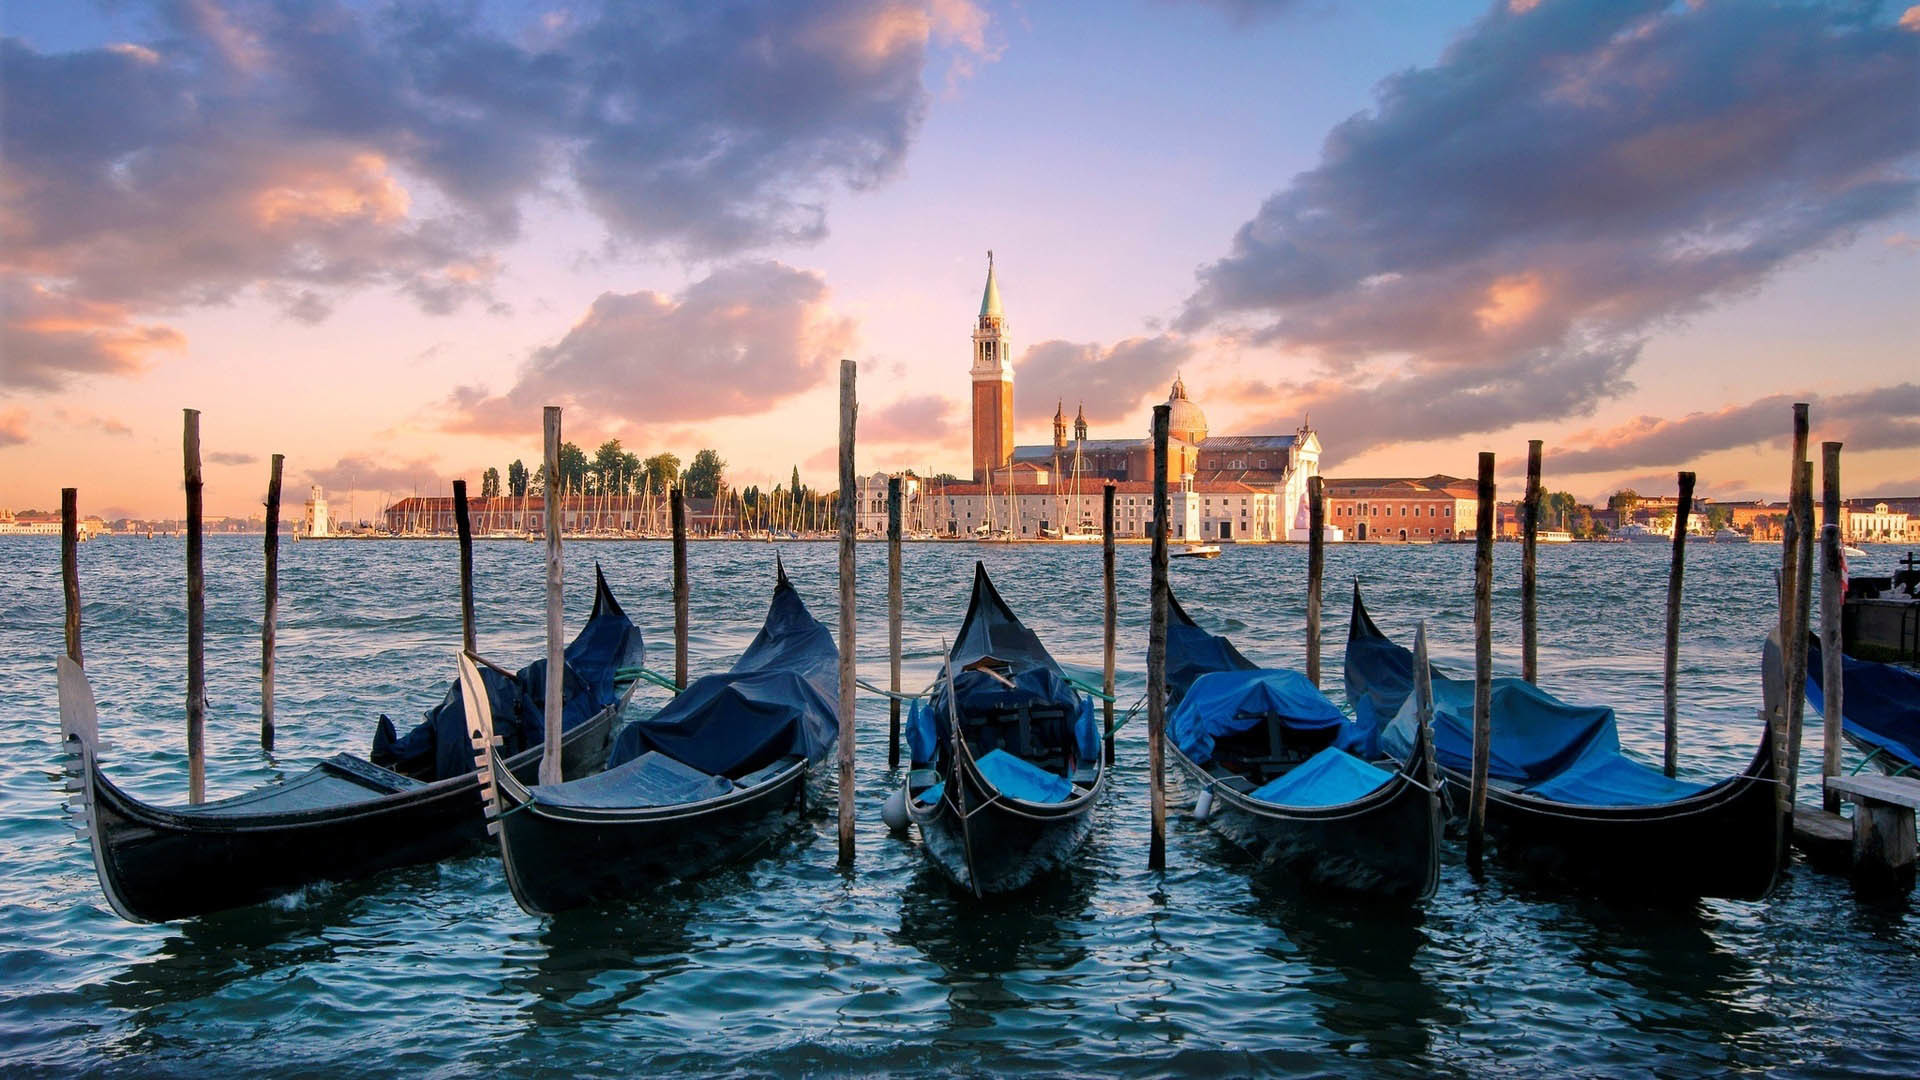 1920x1080 Gondolas on Canal in Venice, Italia  wallpaper